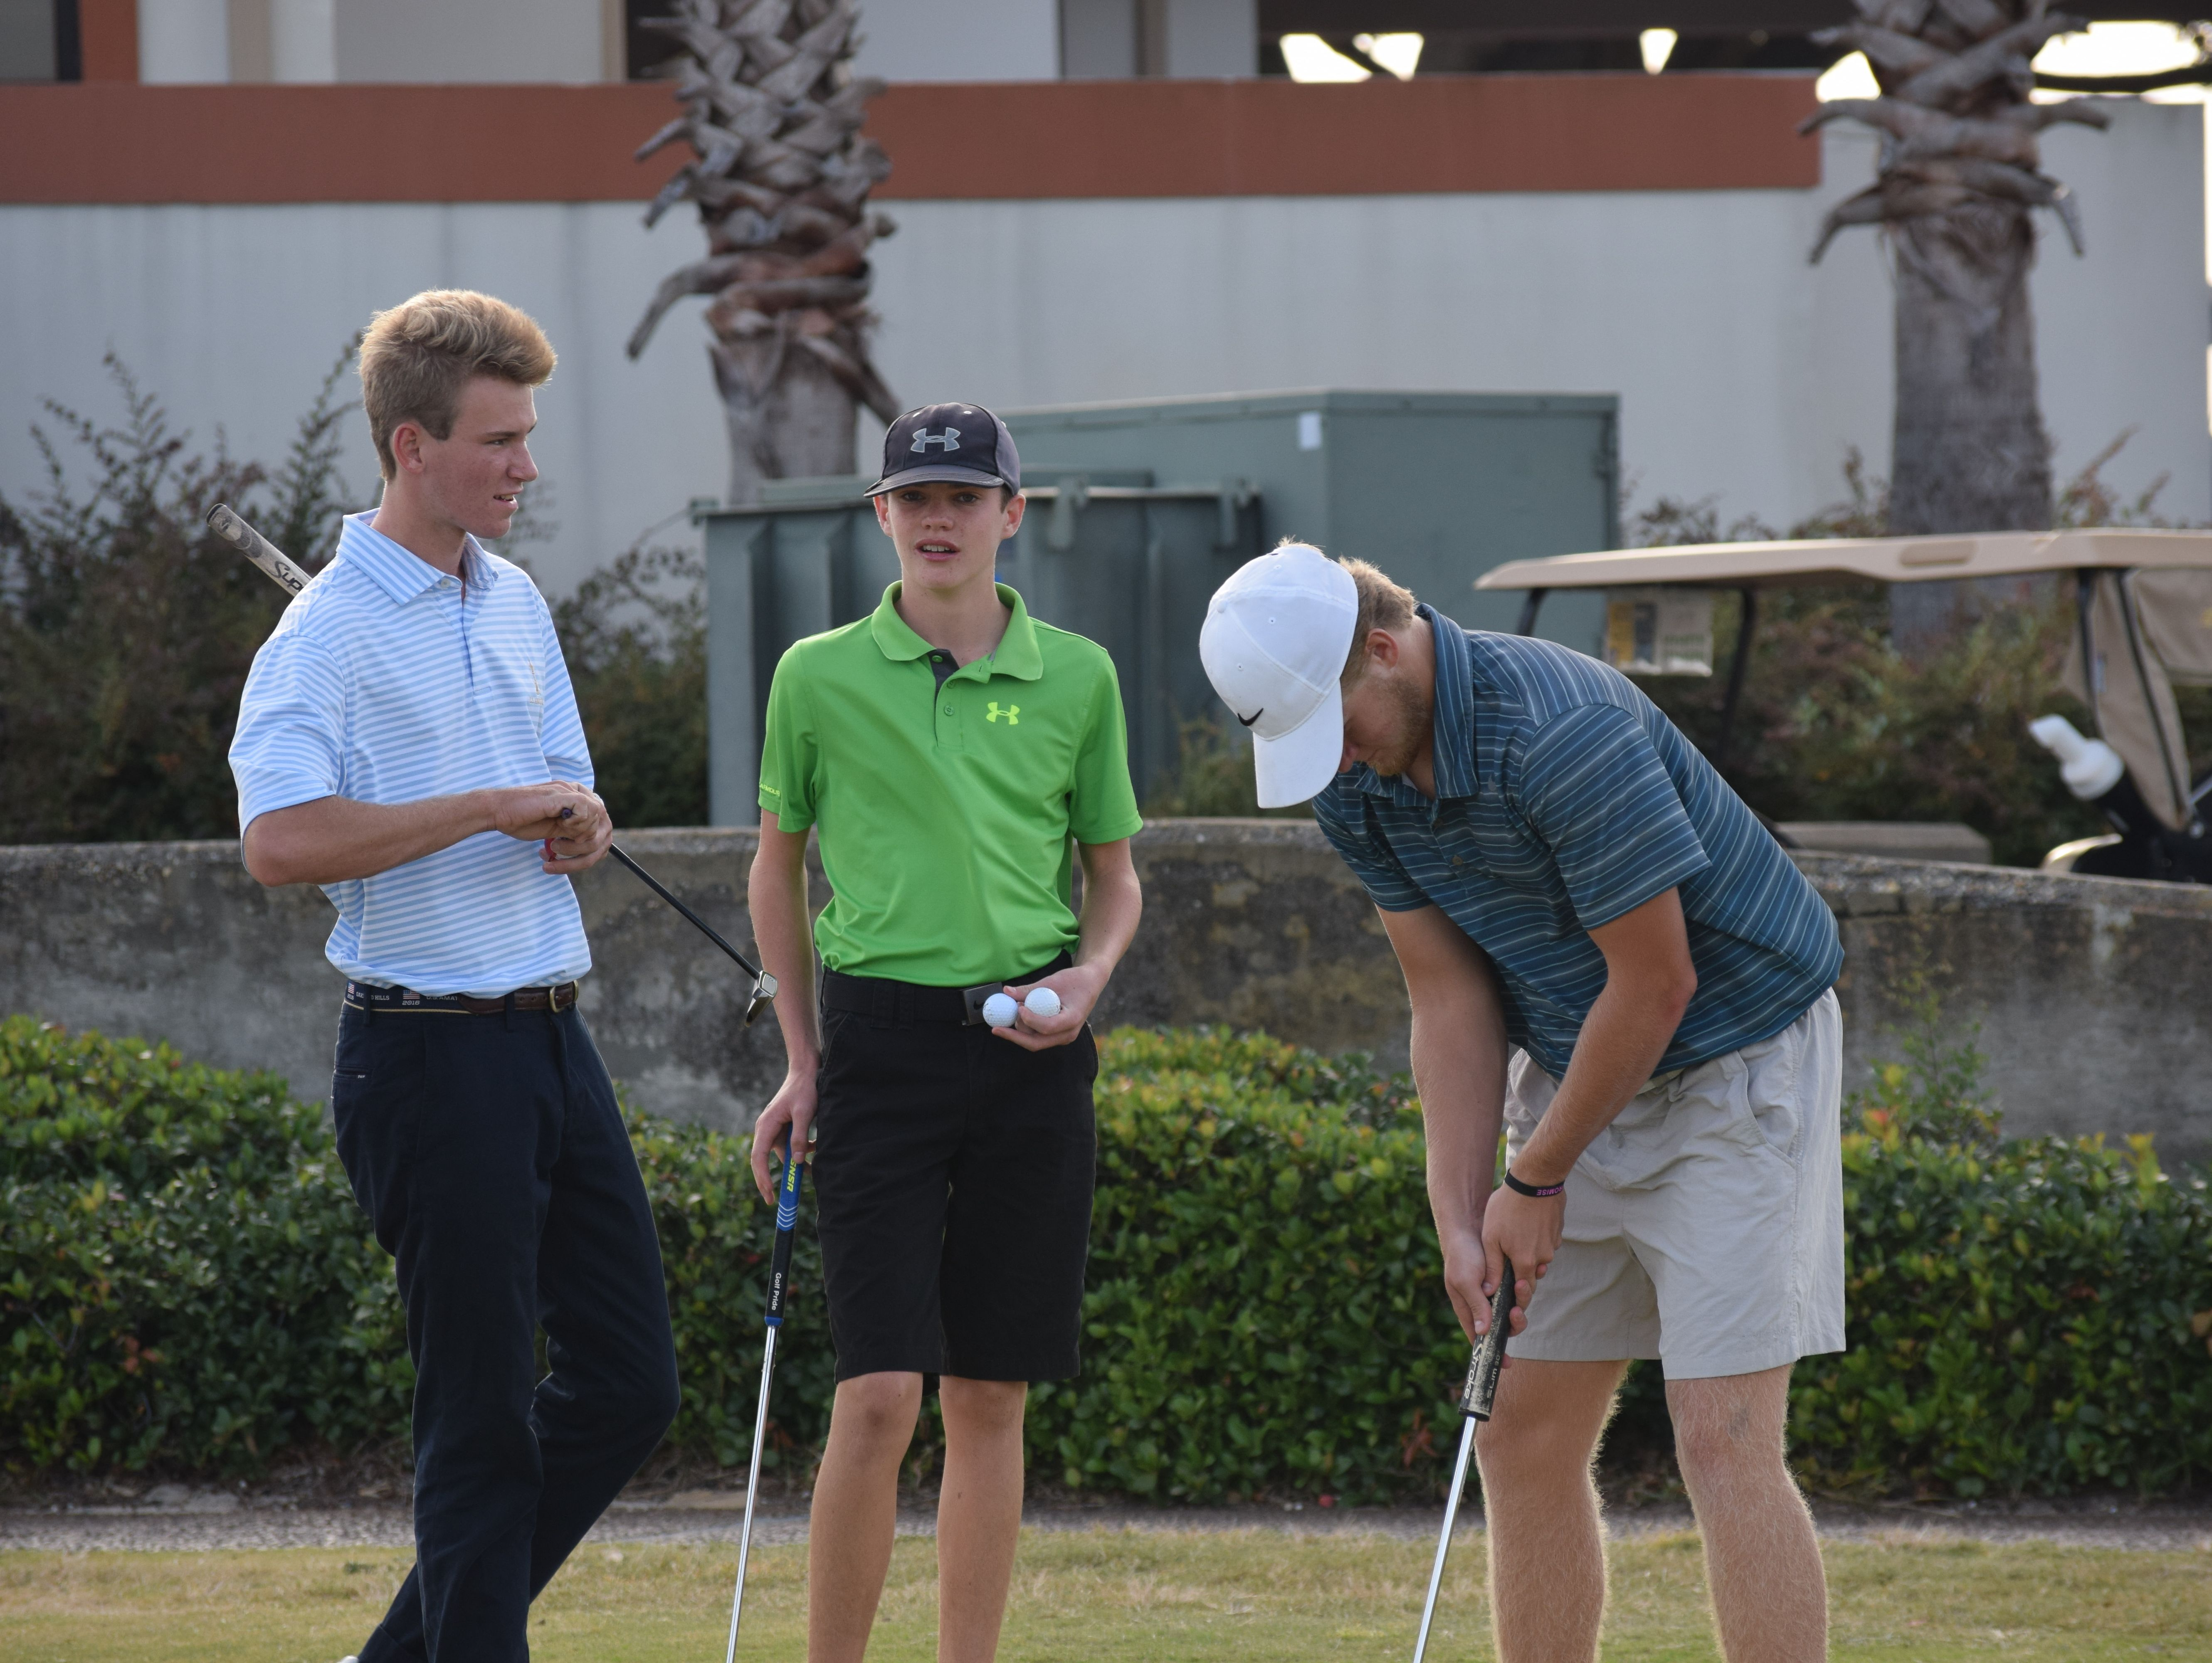 Gulf Breeze High players Brian Richards, Luke Ellis and RJ Phillips practice Wednesday at Tiger Point in preparation for Monday's Class 2A State Tournament where they will be among four area teams in boys and girls classifications participating in the state level.